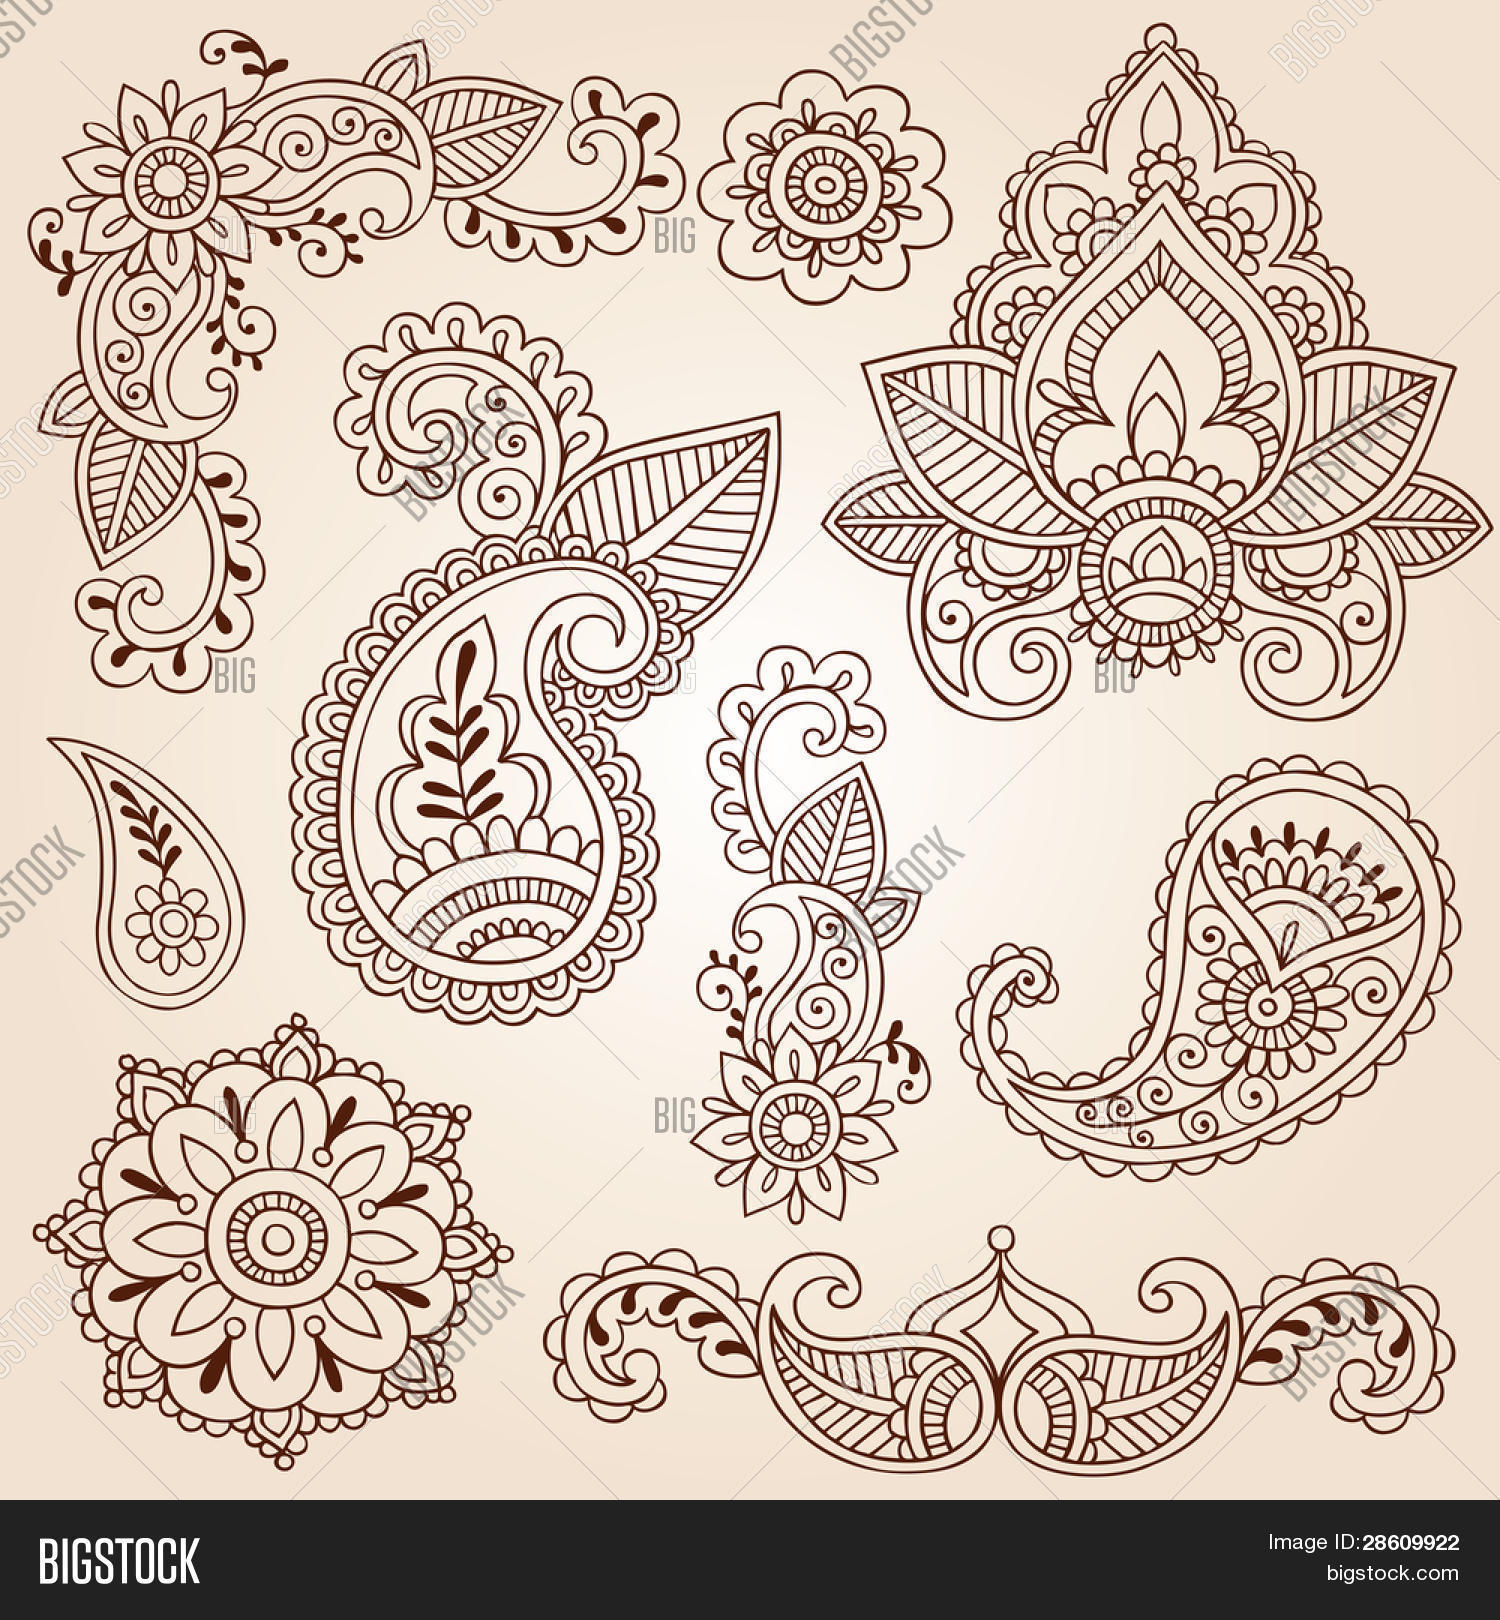 Henna Mehndi Doodles Abstract Vector & Photo | Bigstock